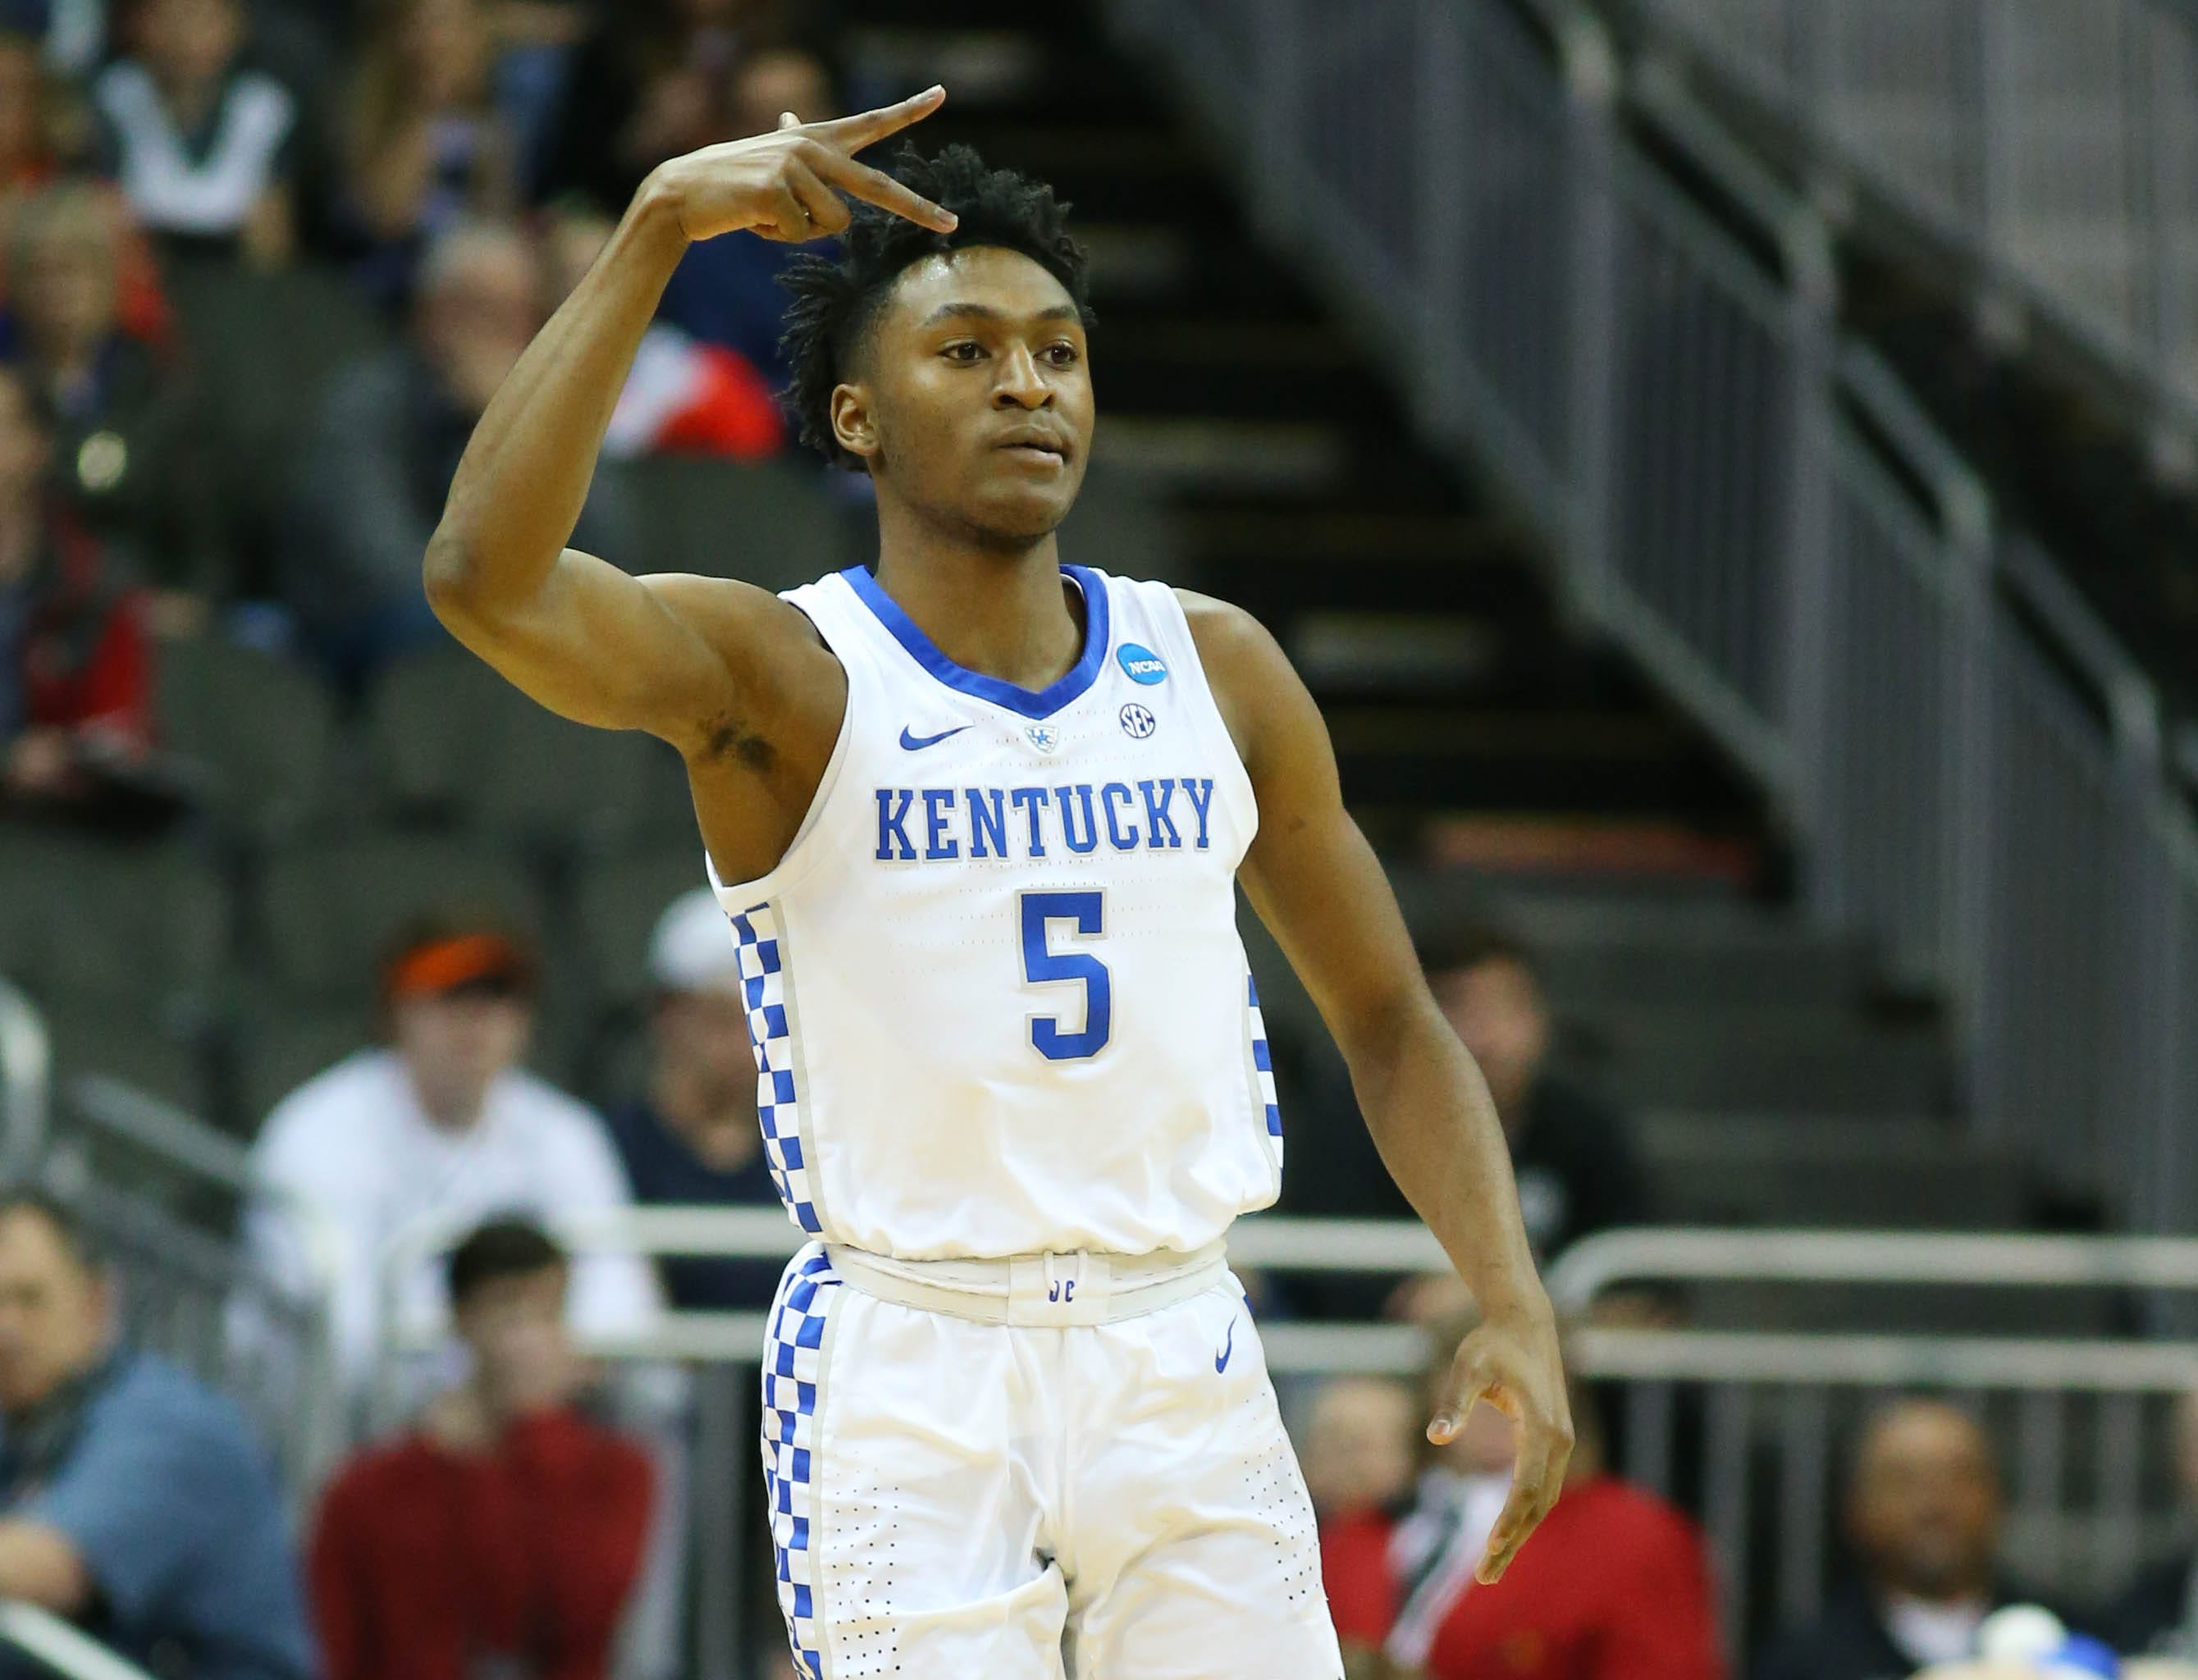 Mar 31, 2019; Kansas City, MO, United States; Kentucky Wildcats guard Immanuel Quickley (5) reacts after a basket against the Auburn Tigers during the first half in the championship game of the midwest regional of the 2019 NCAA Tournament at Sprint Center. Mandatory Credit: Jay Biggerstaff-USA TODAY Sports